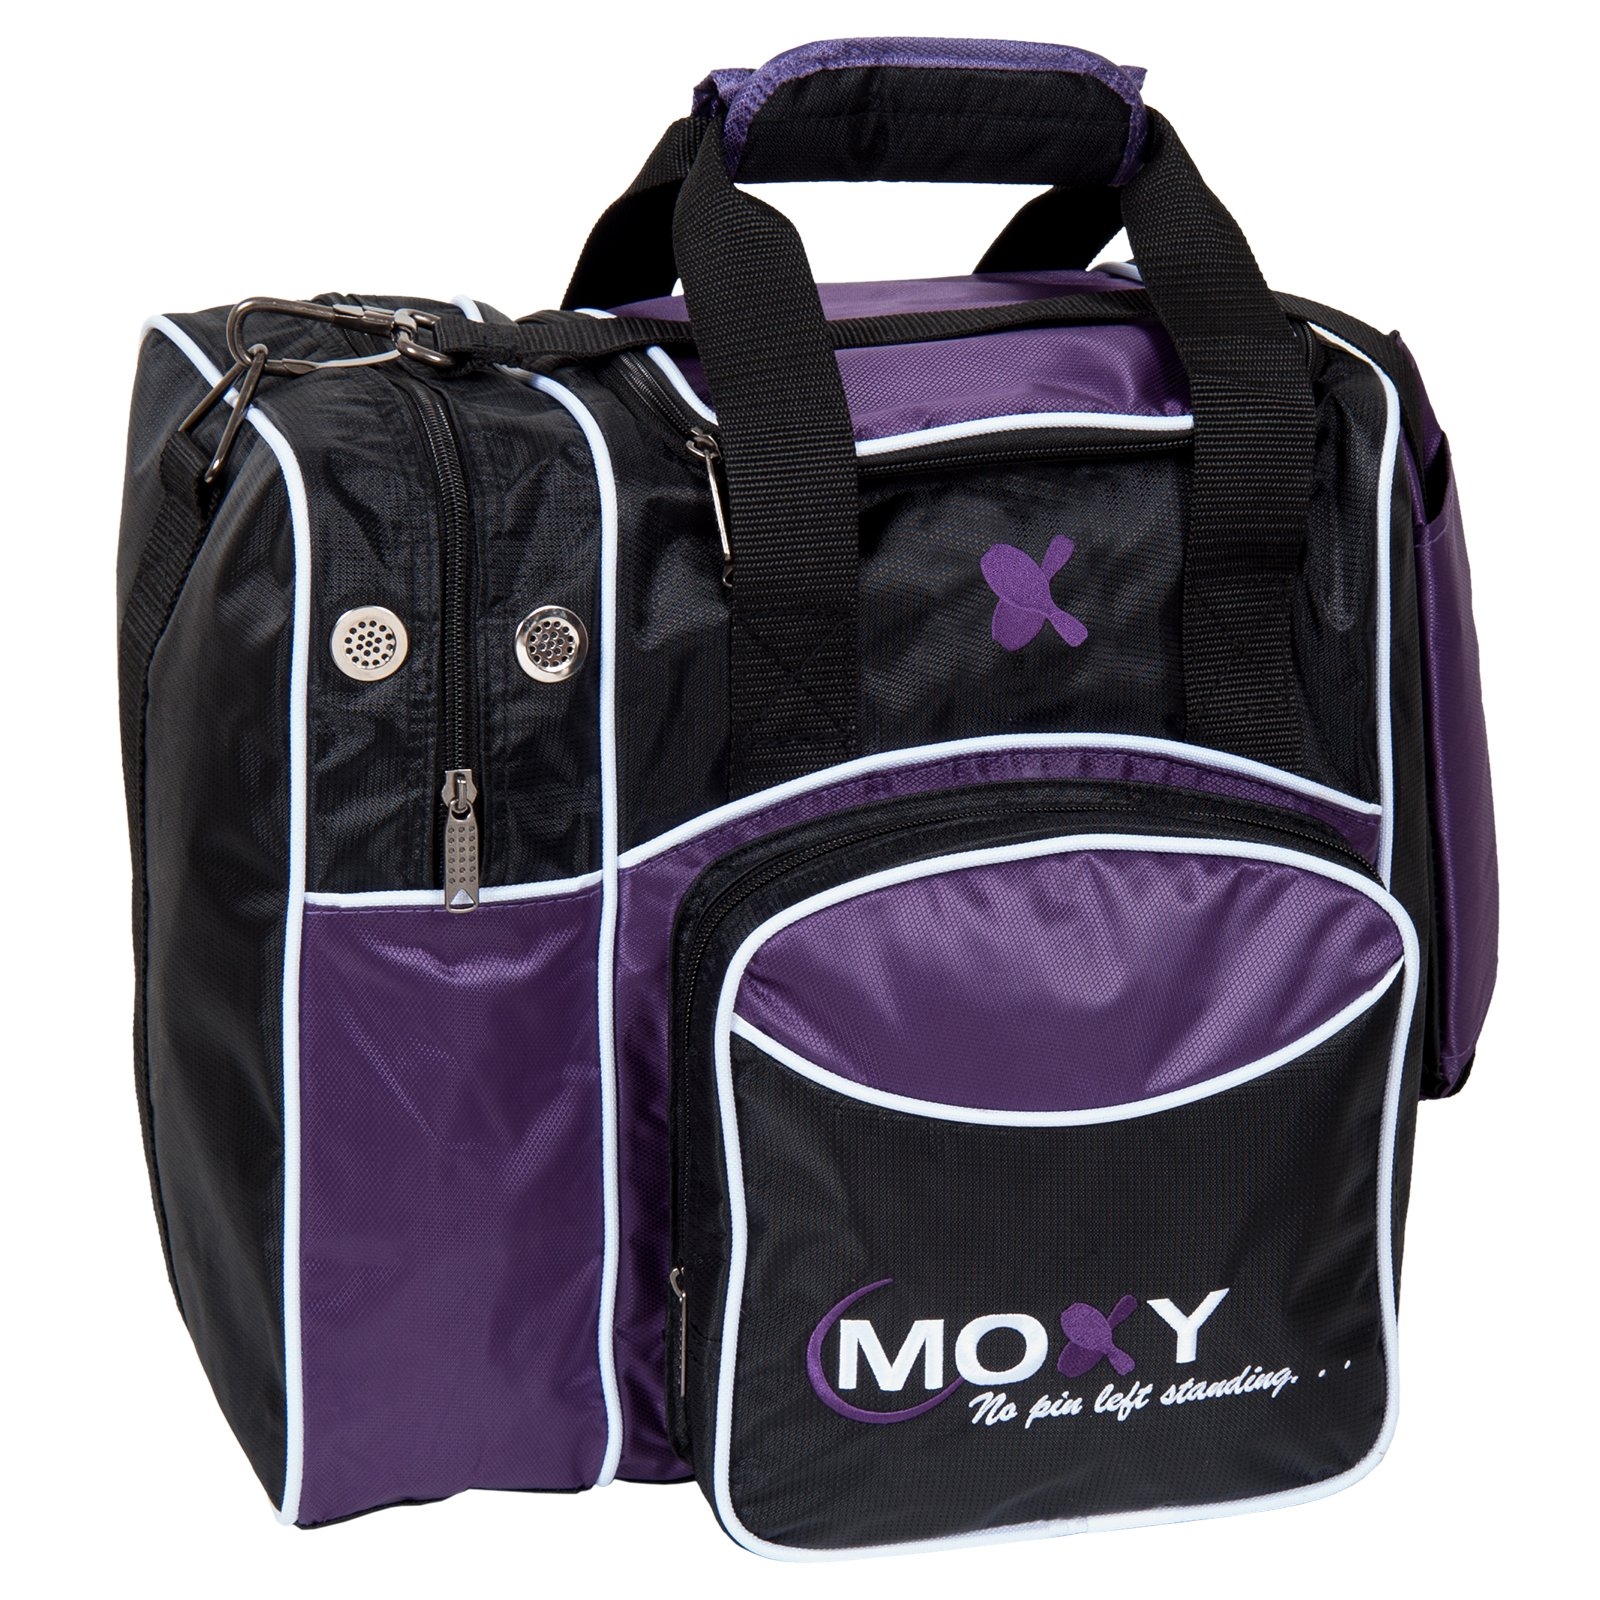 Moxy Deluxe Single Tote Bowling Bag,Purple/Black by Moxy Bowling Products